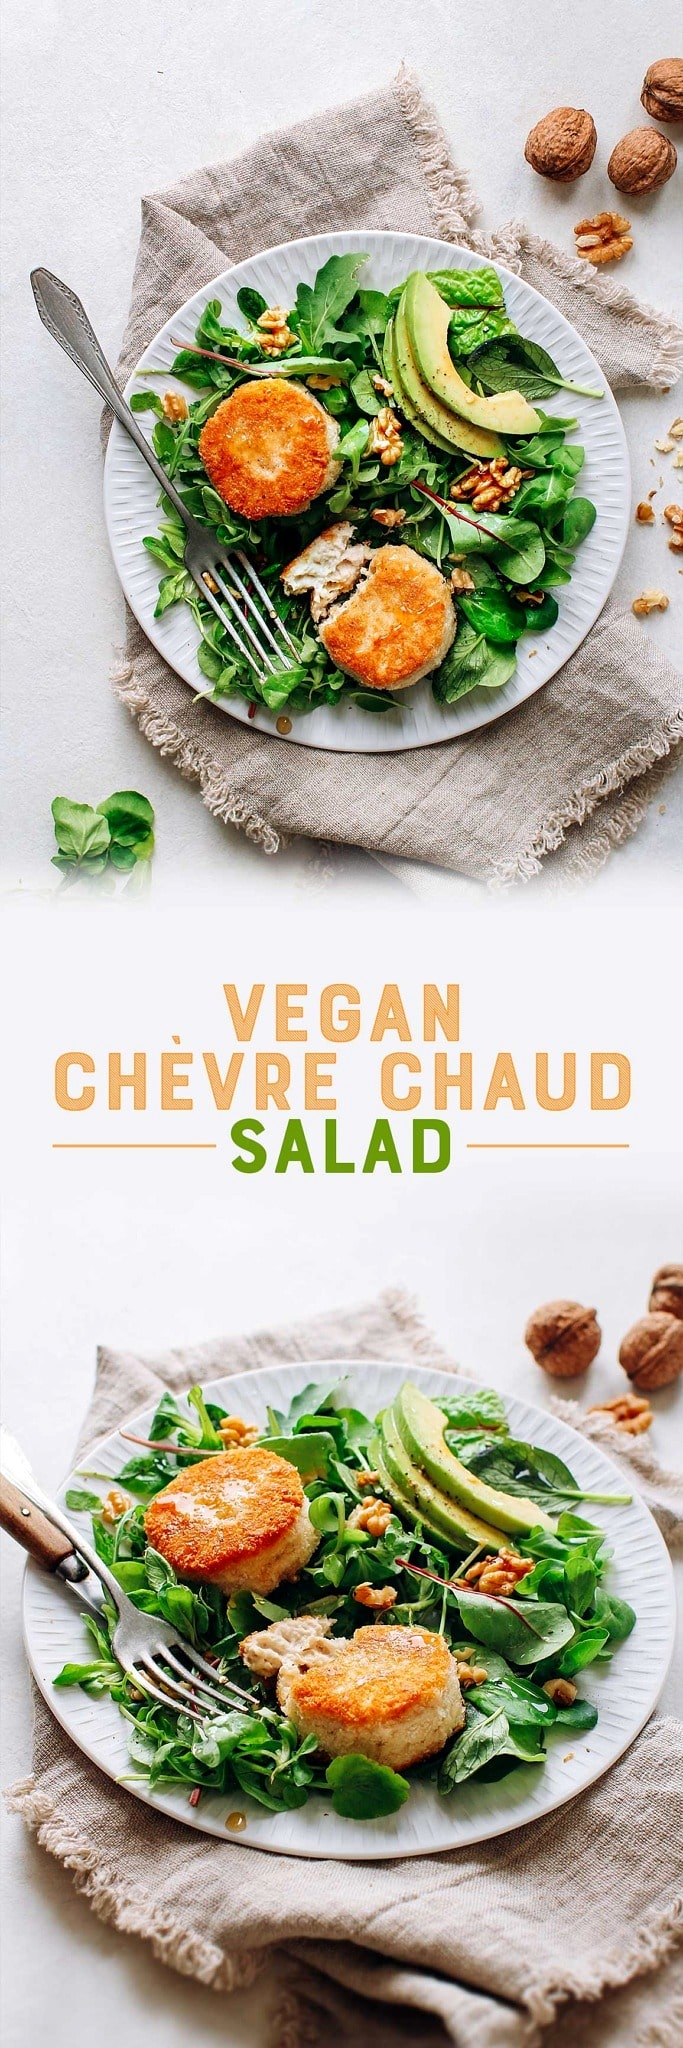 Vegan Chèvre Chaud Salad